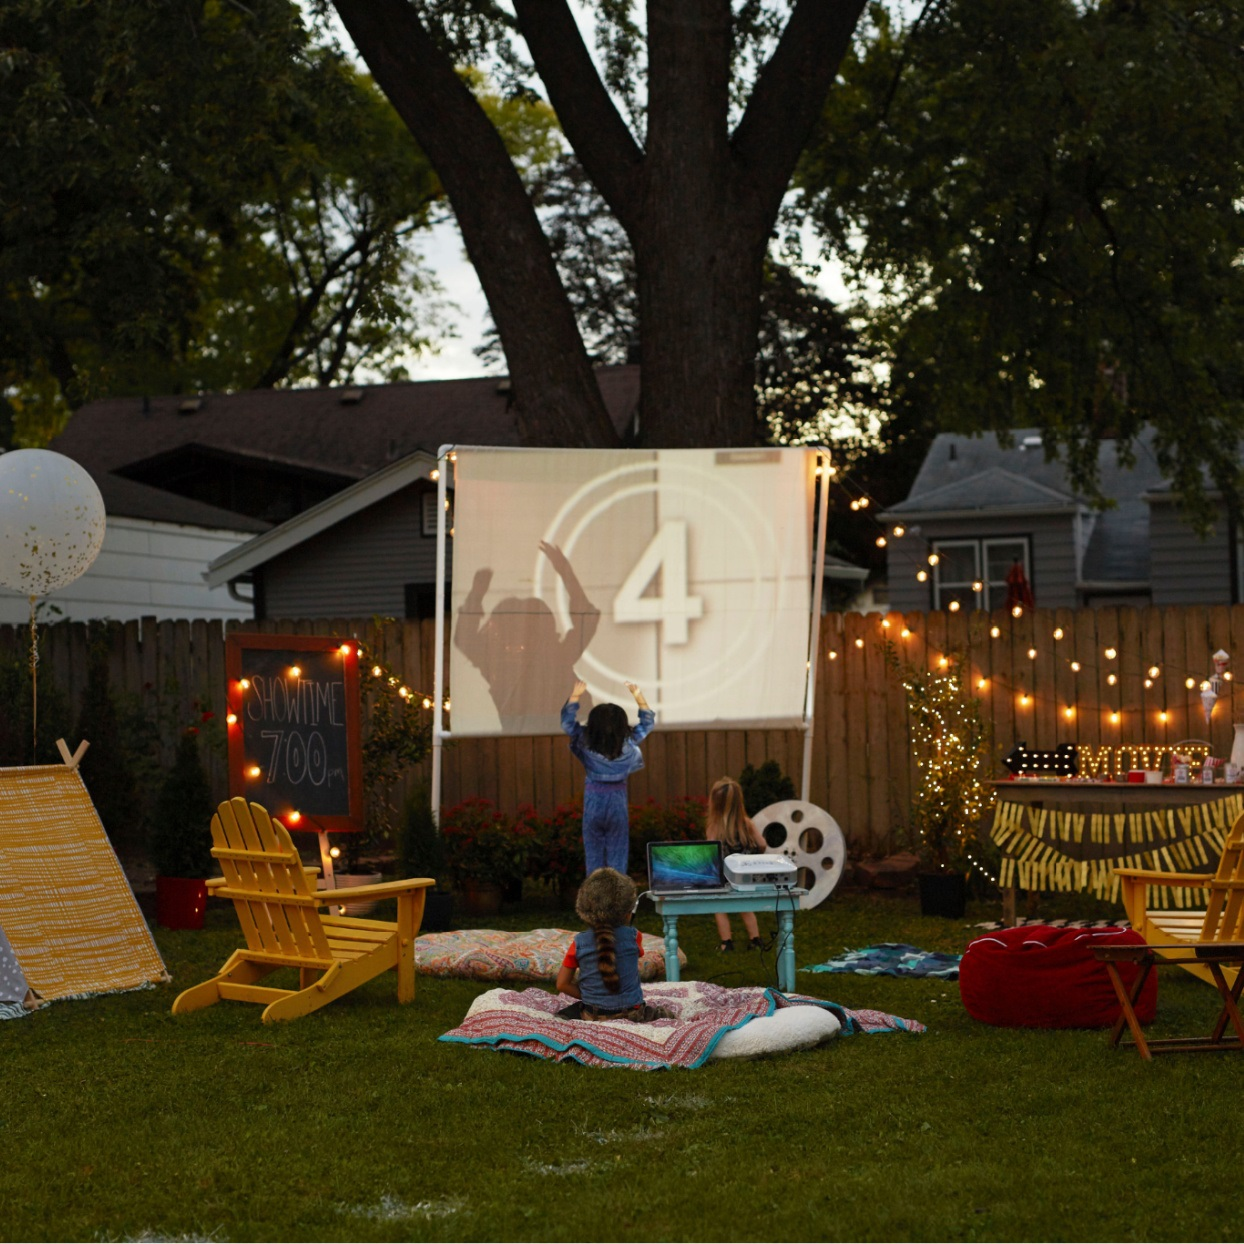 set up and ready for family backyard movie night